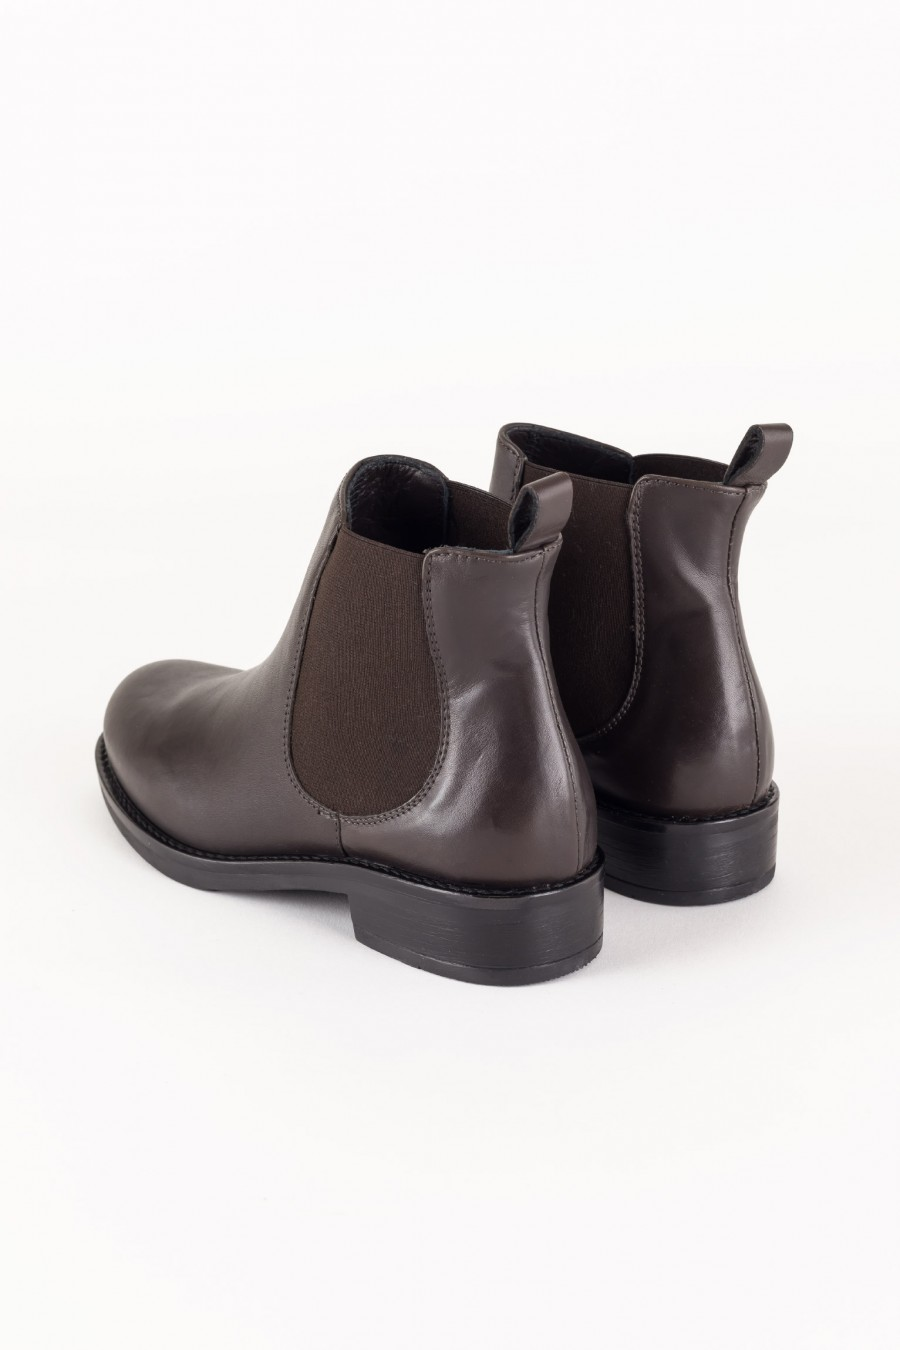 Casual brown boots